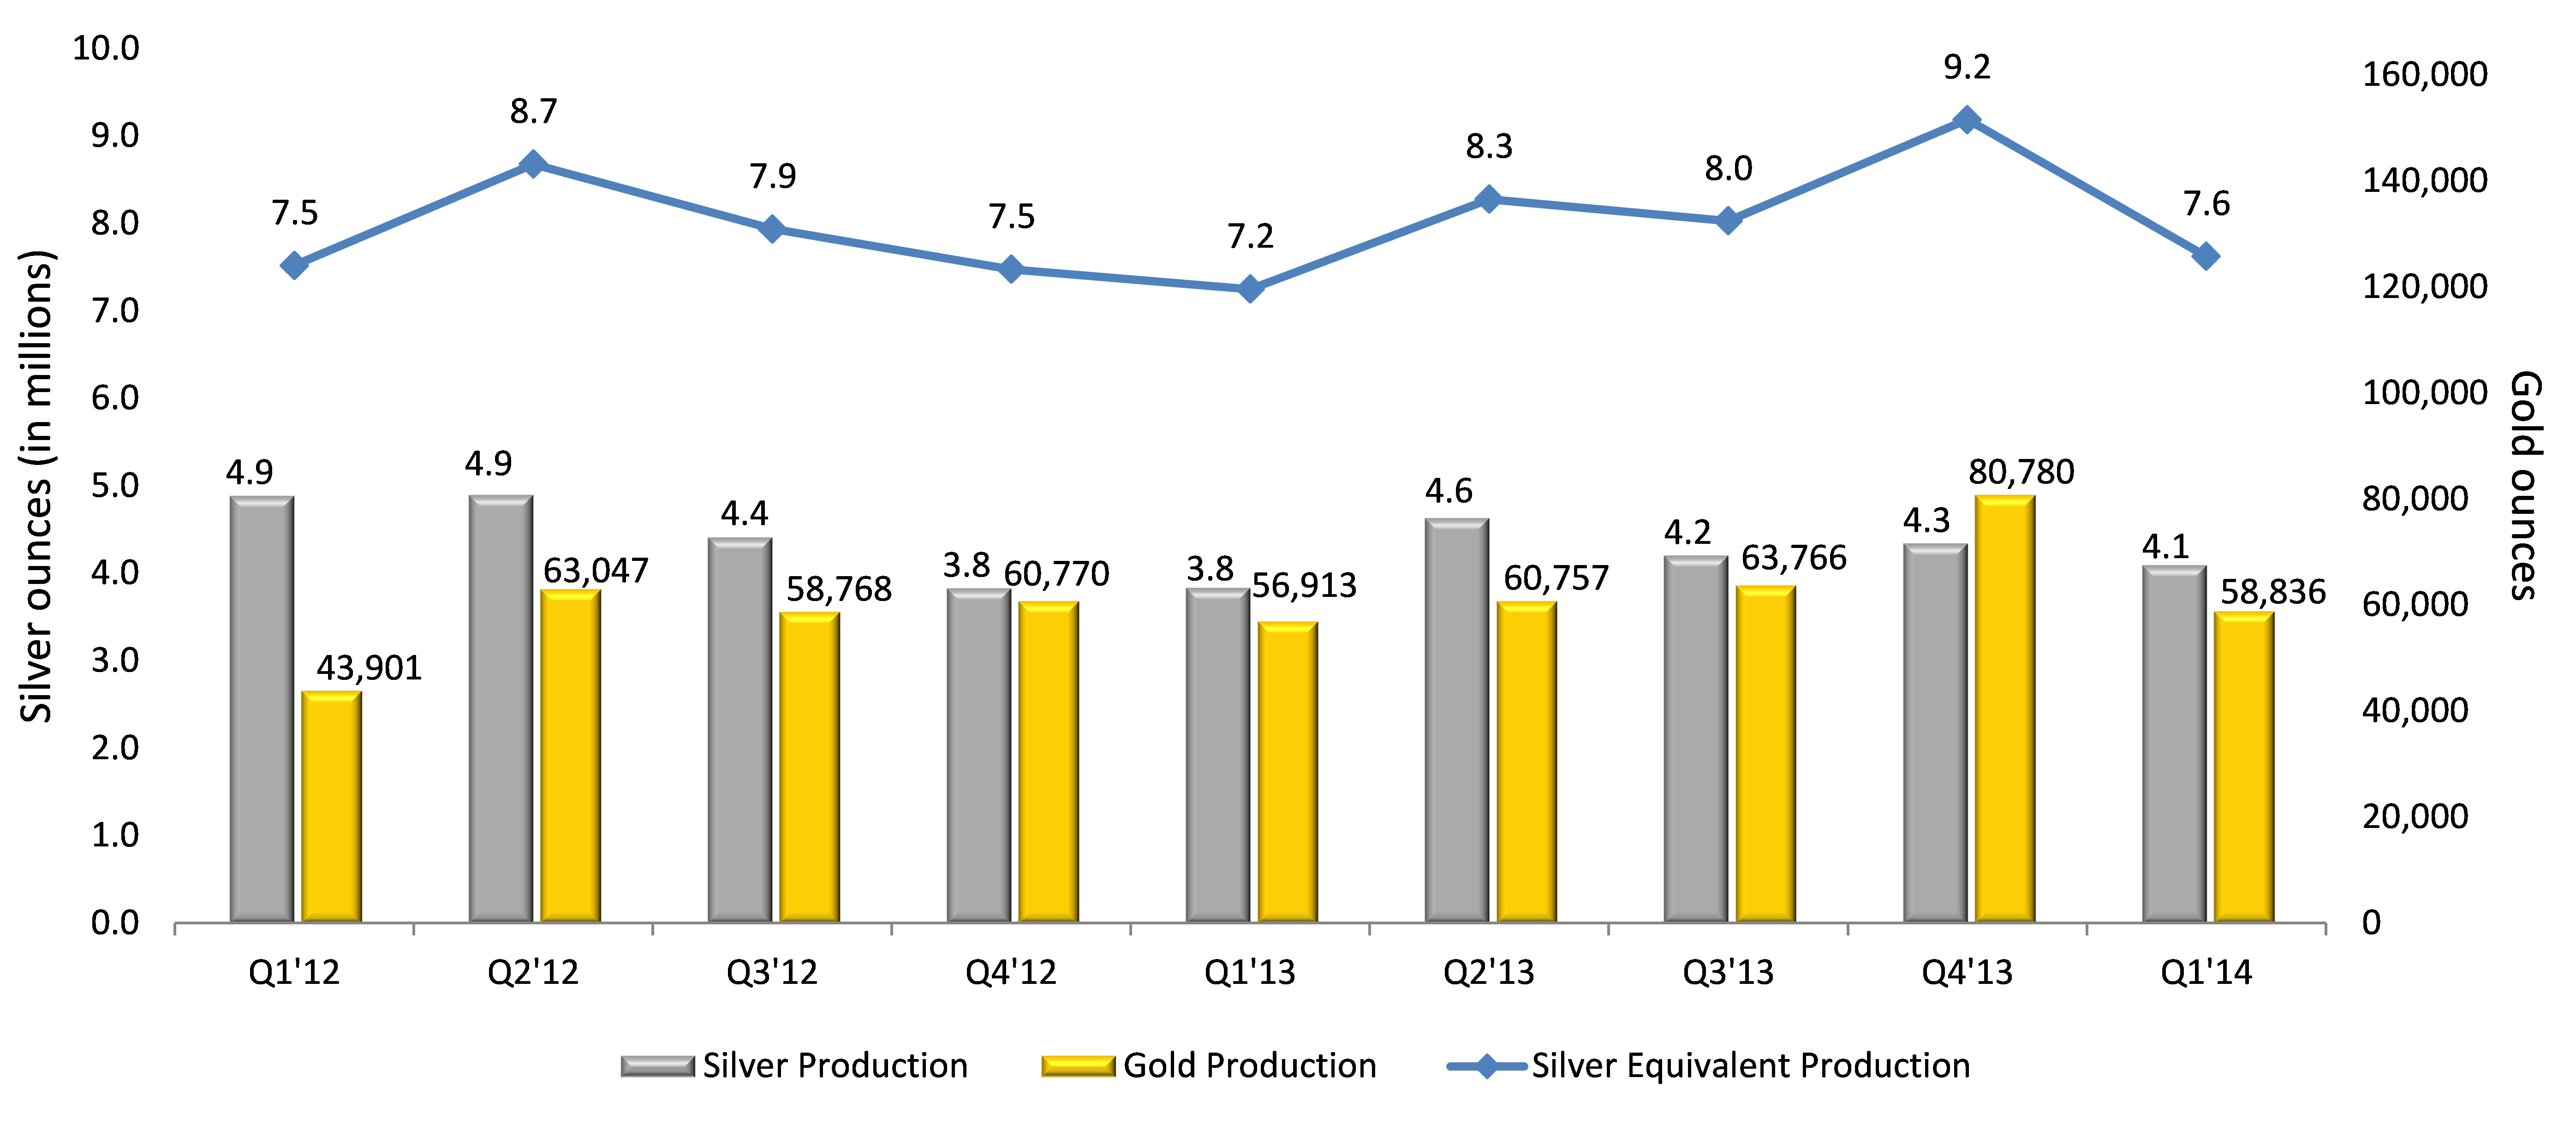 Quarterly Production Results